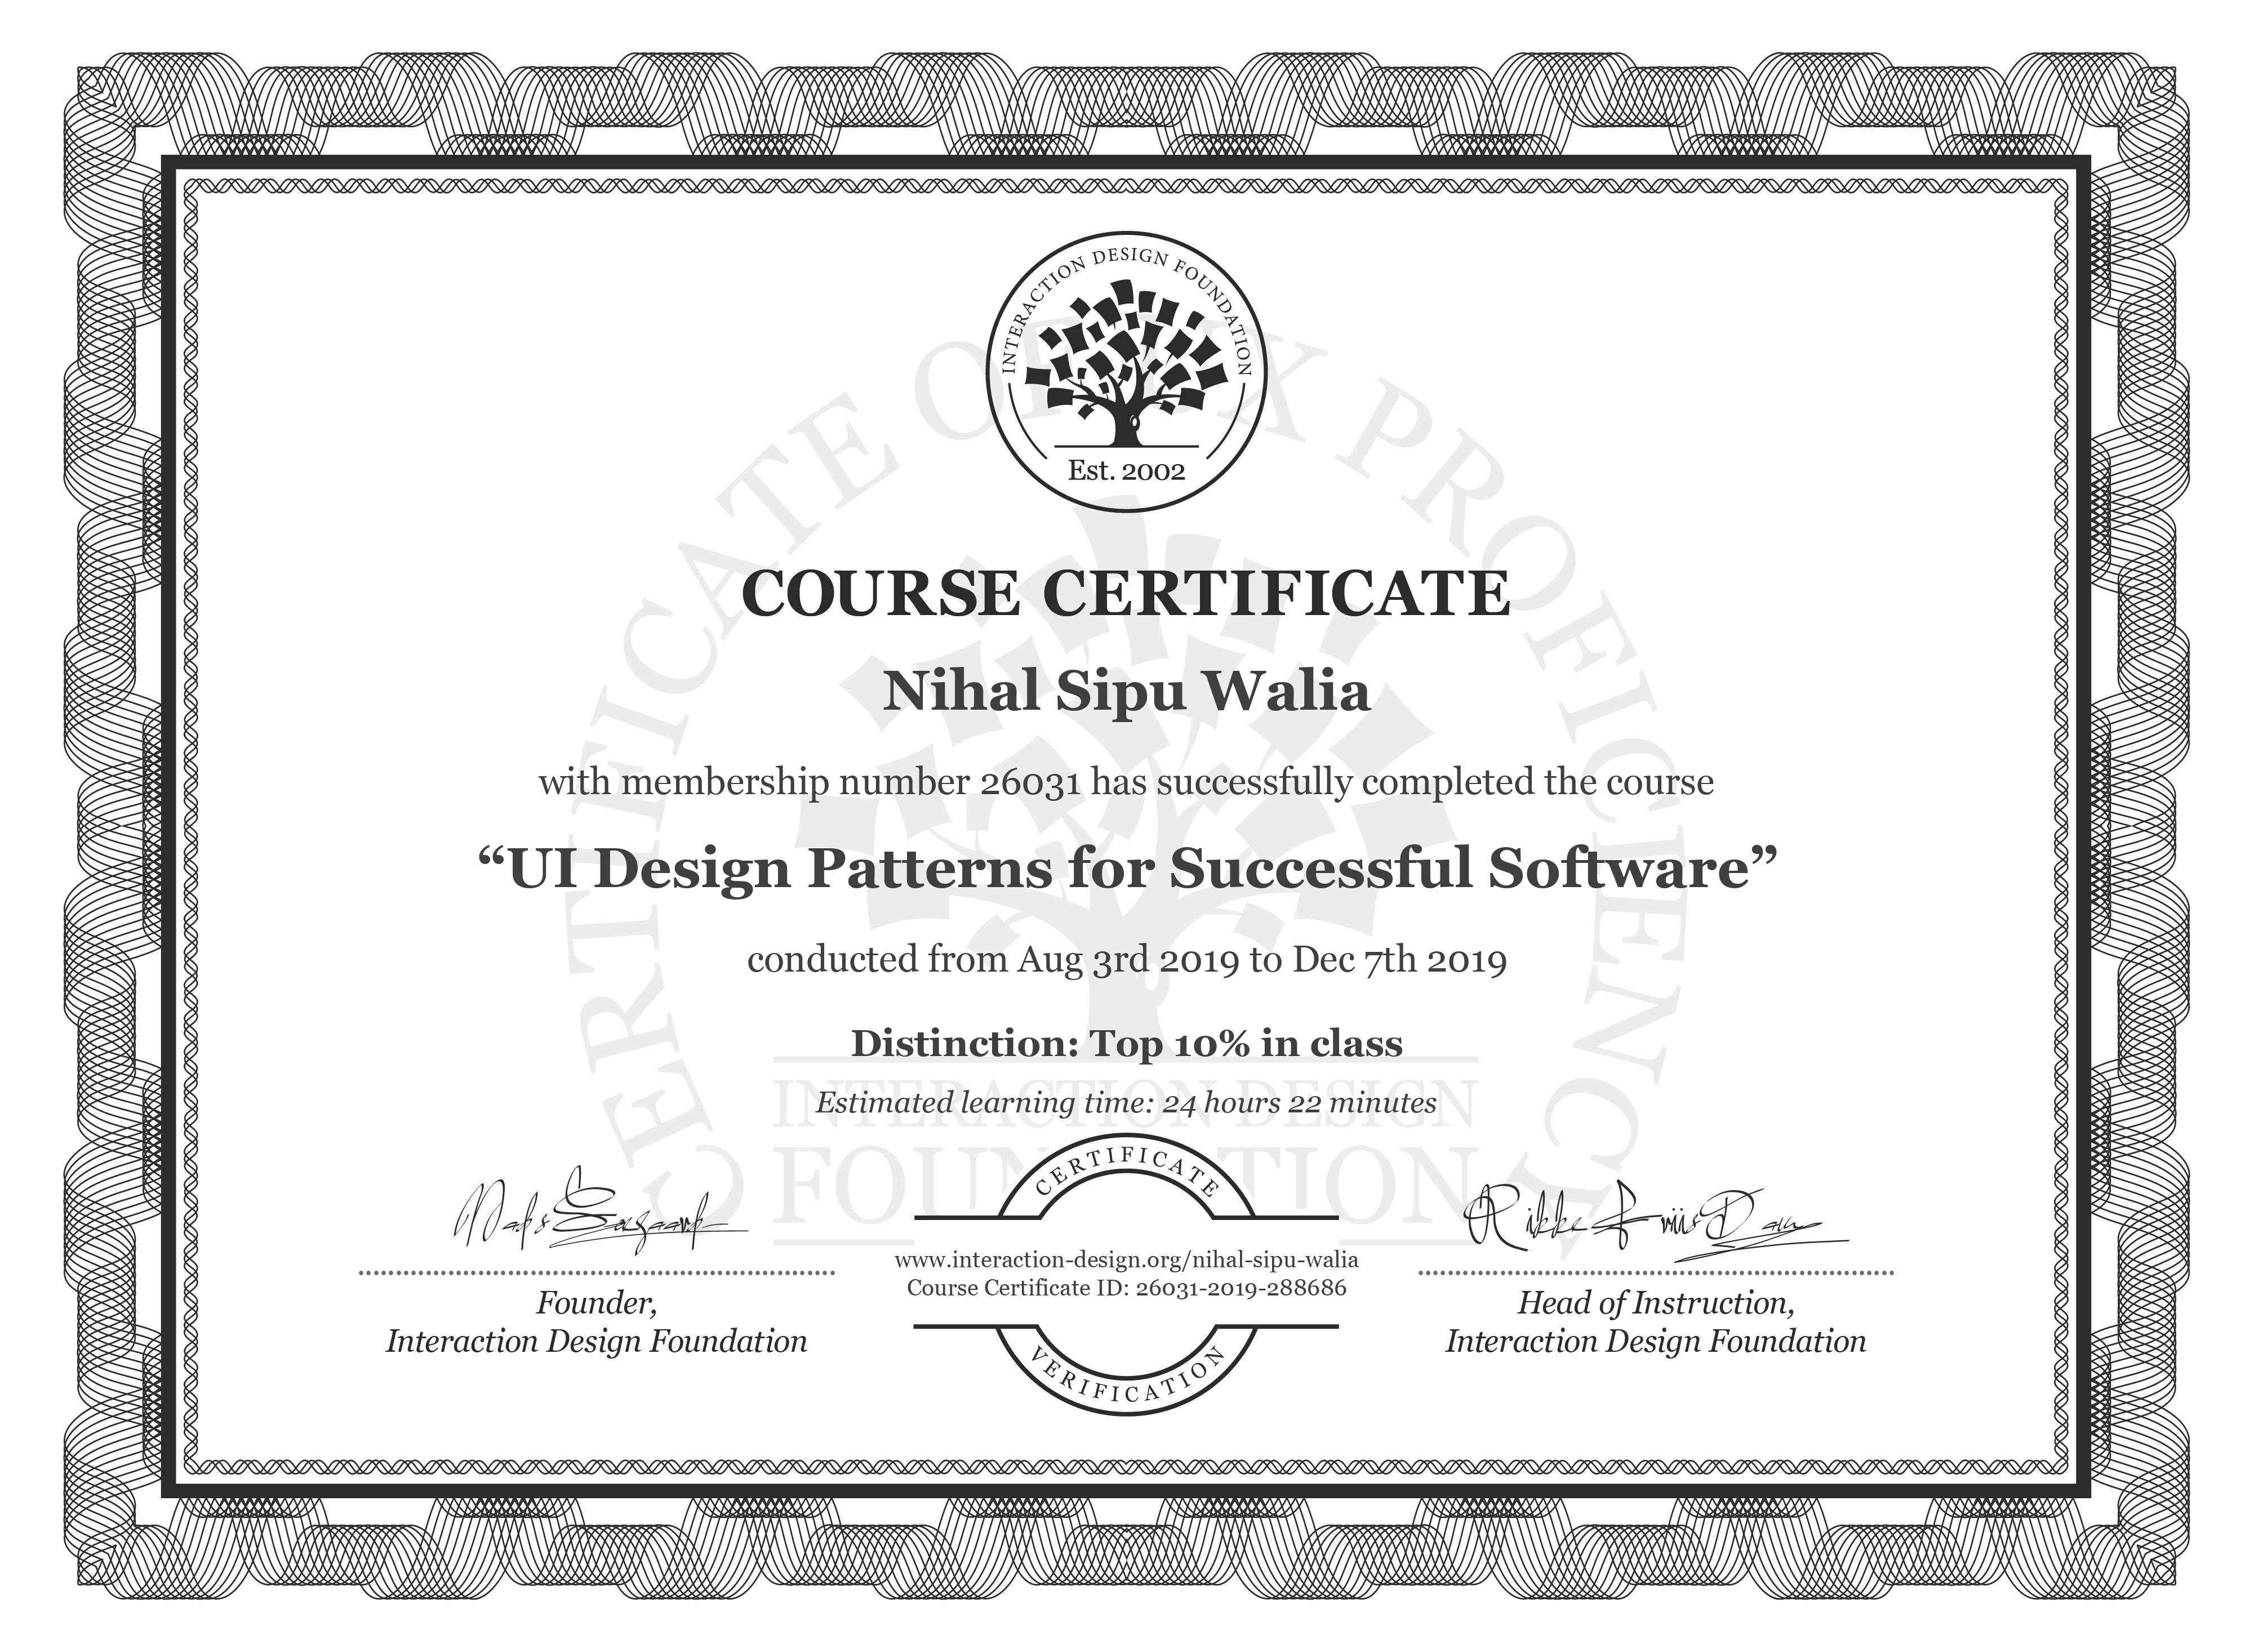 Nihal Sipu Walia: Course Certificate - UI Design Patterns for Successful Software